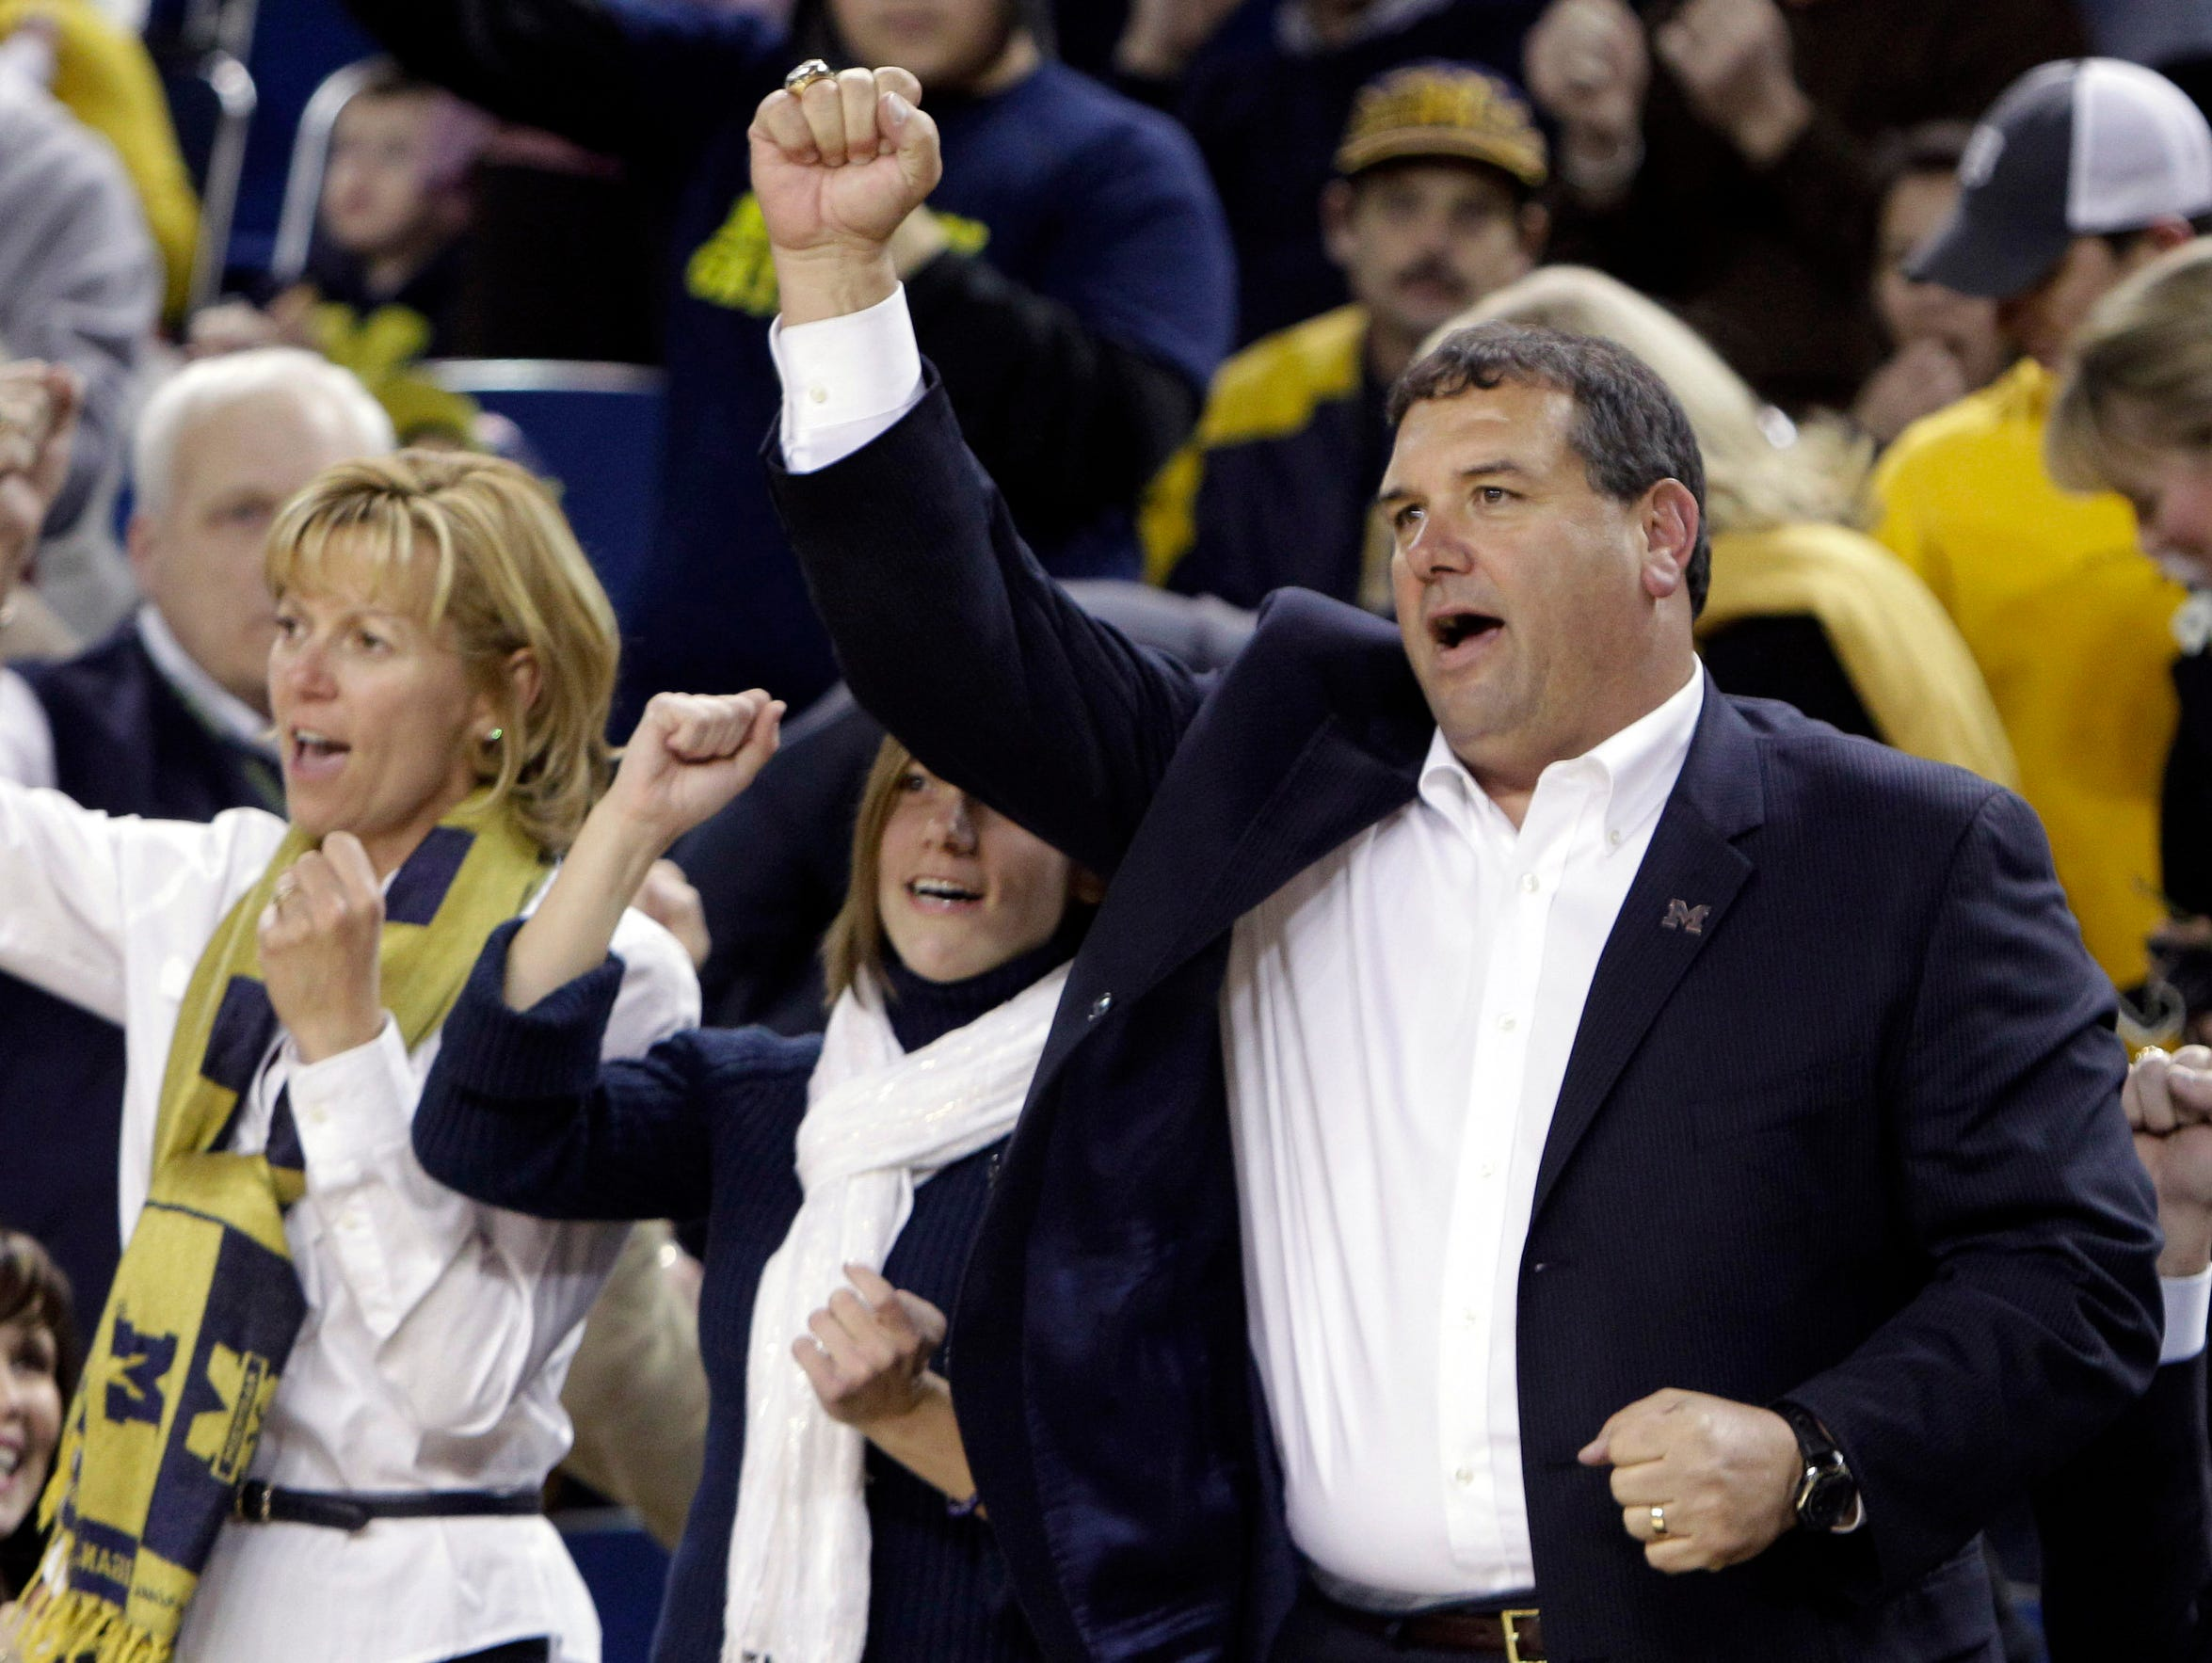 Michigan football coach Brady Hoke, right, after being